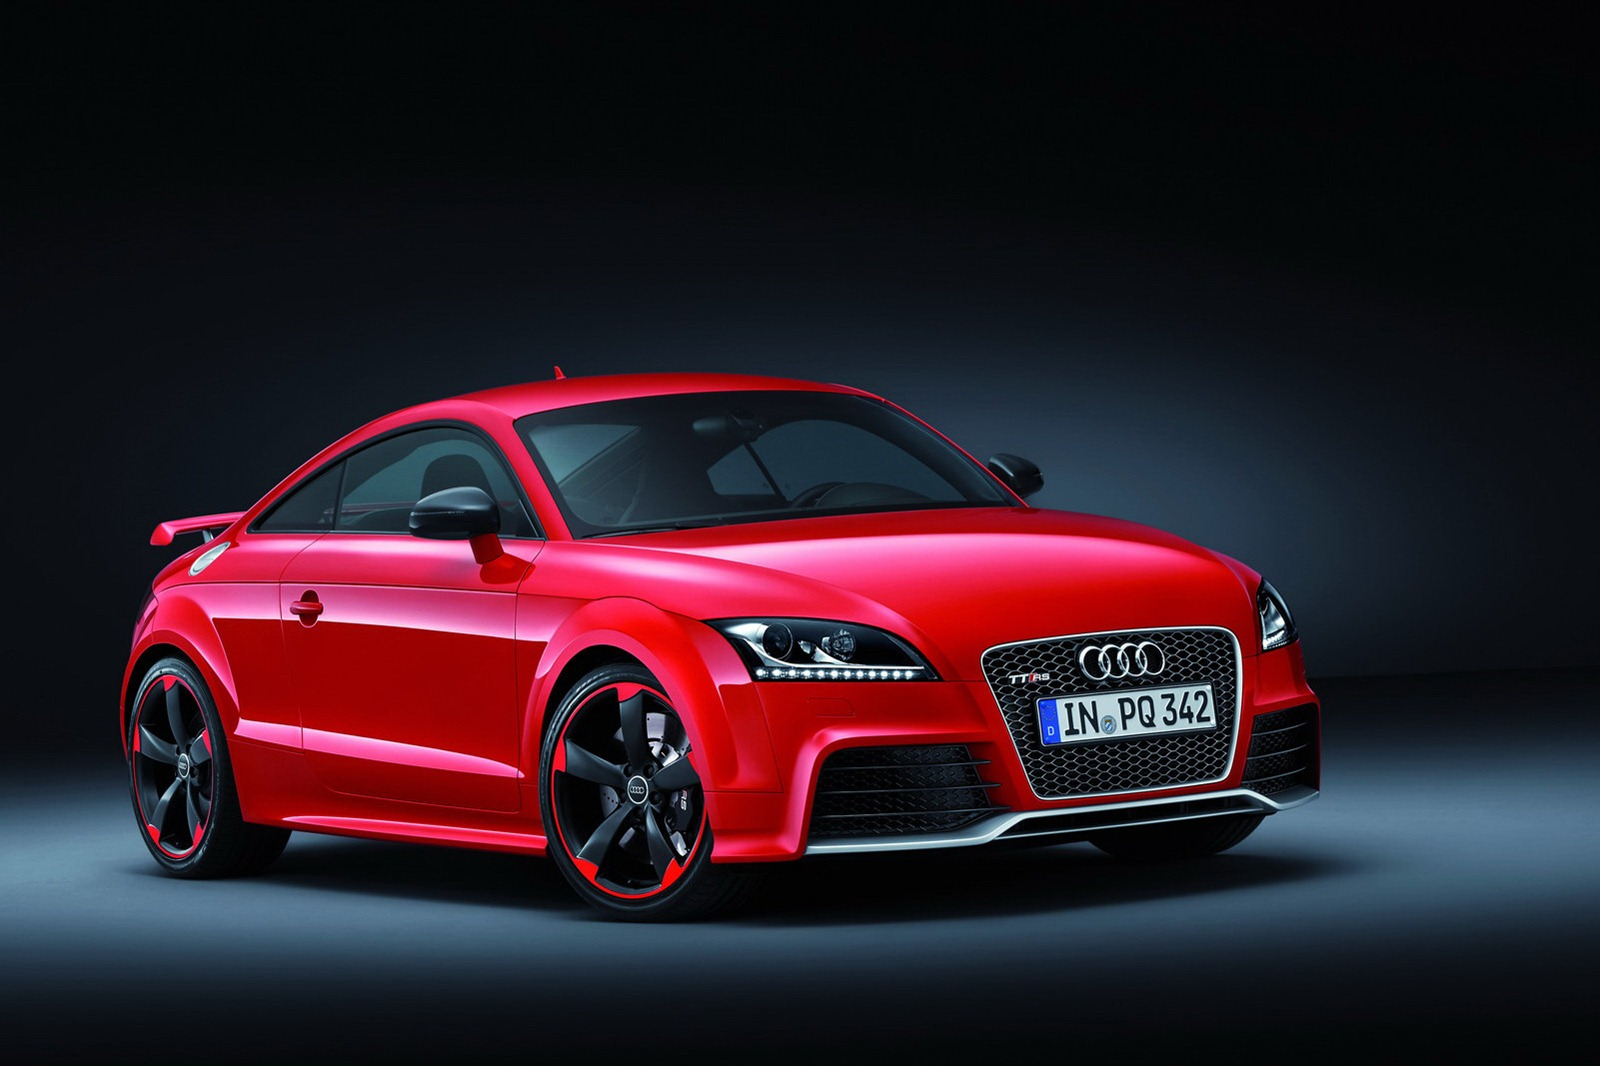 Rumors The new Audi TT RS will produce 400 hp and it will be presented in Geneva